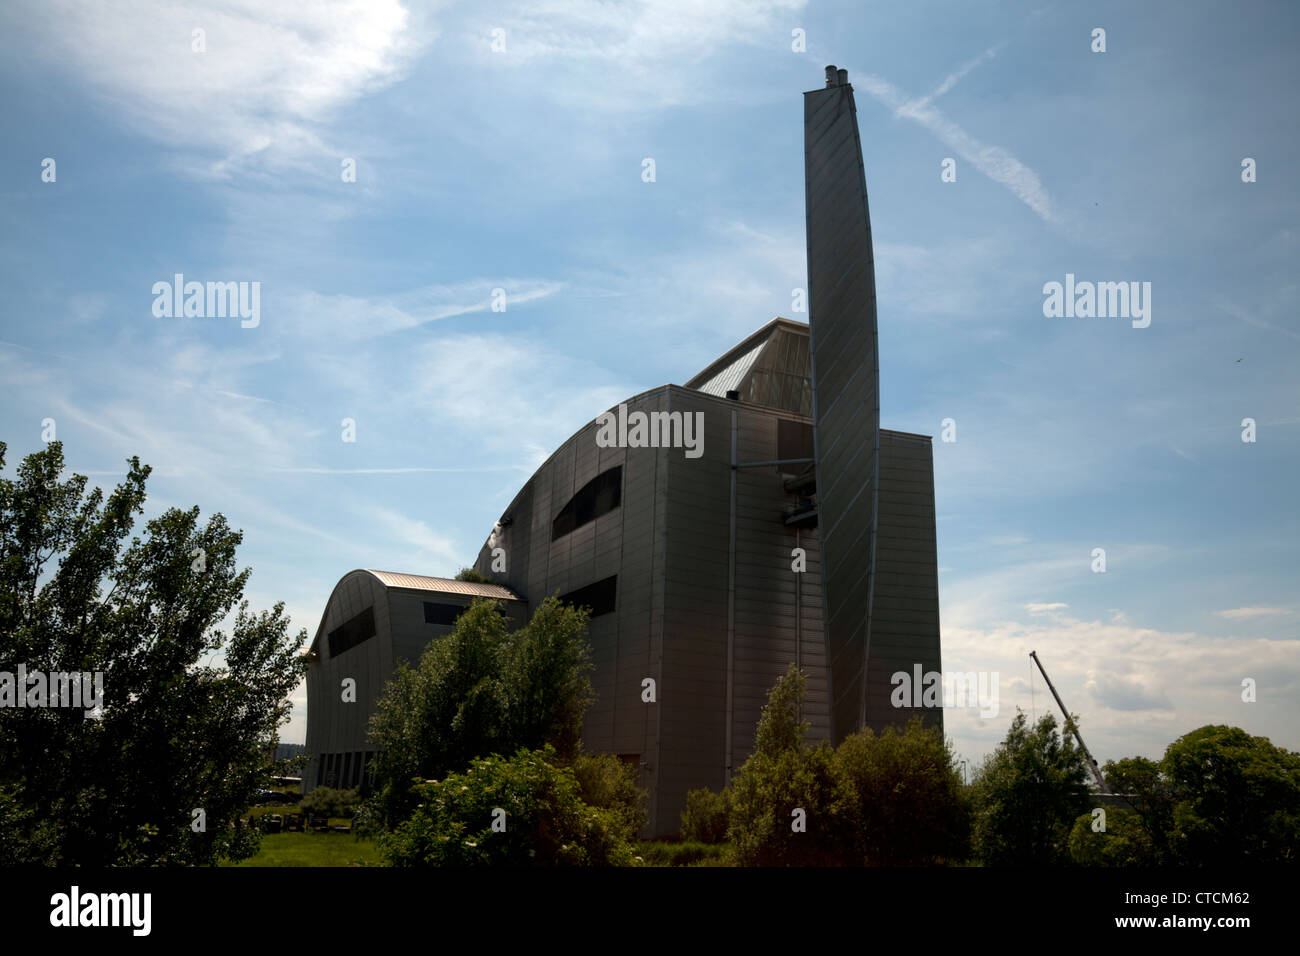 crossness sludge powered generator belvedere london england - Stock Image